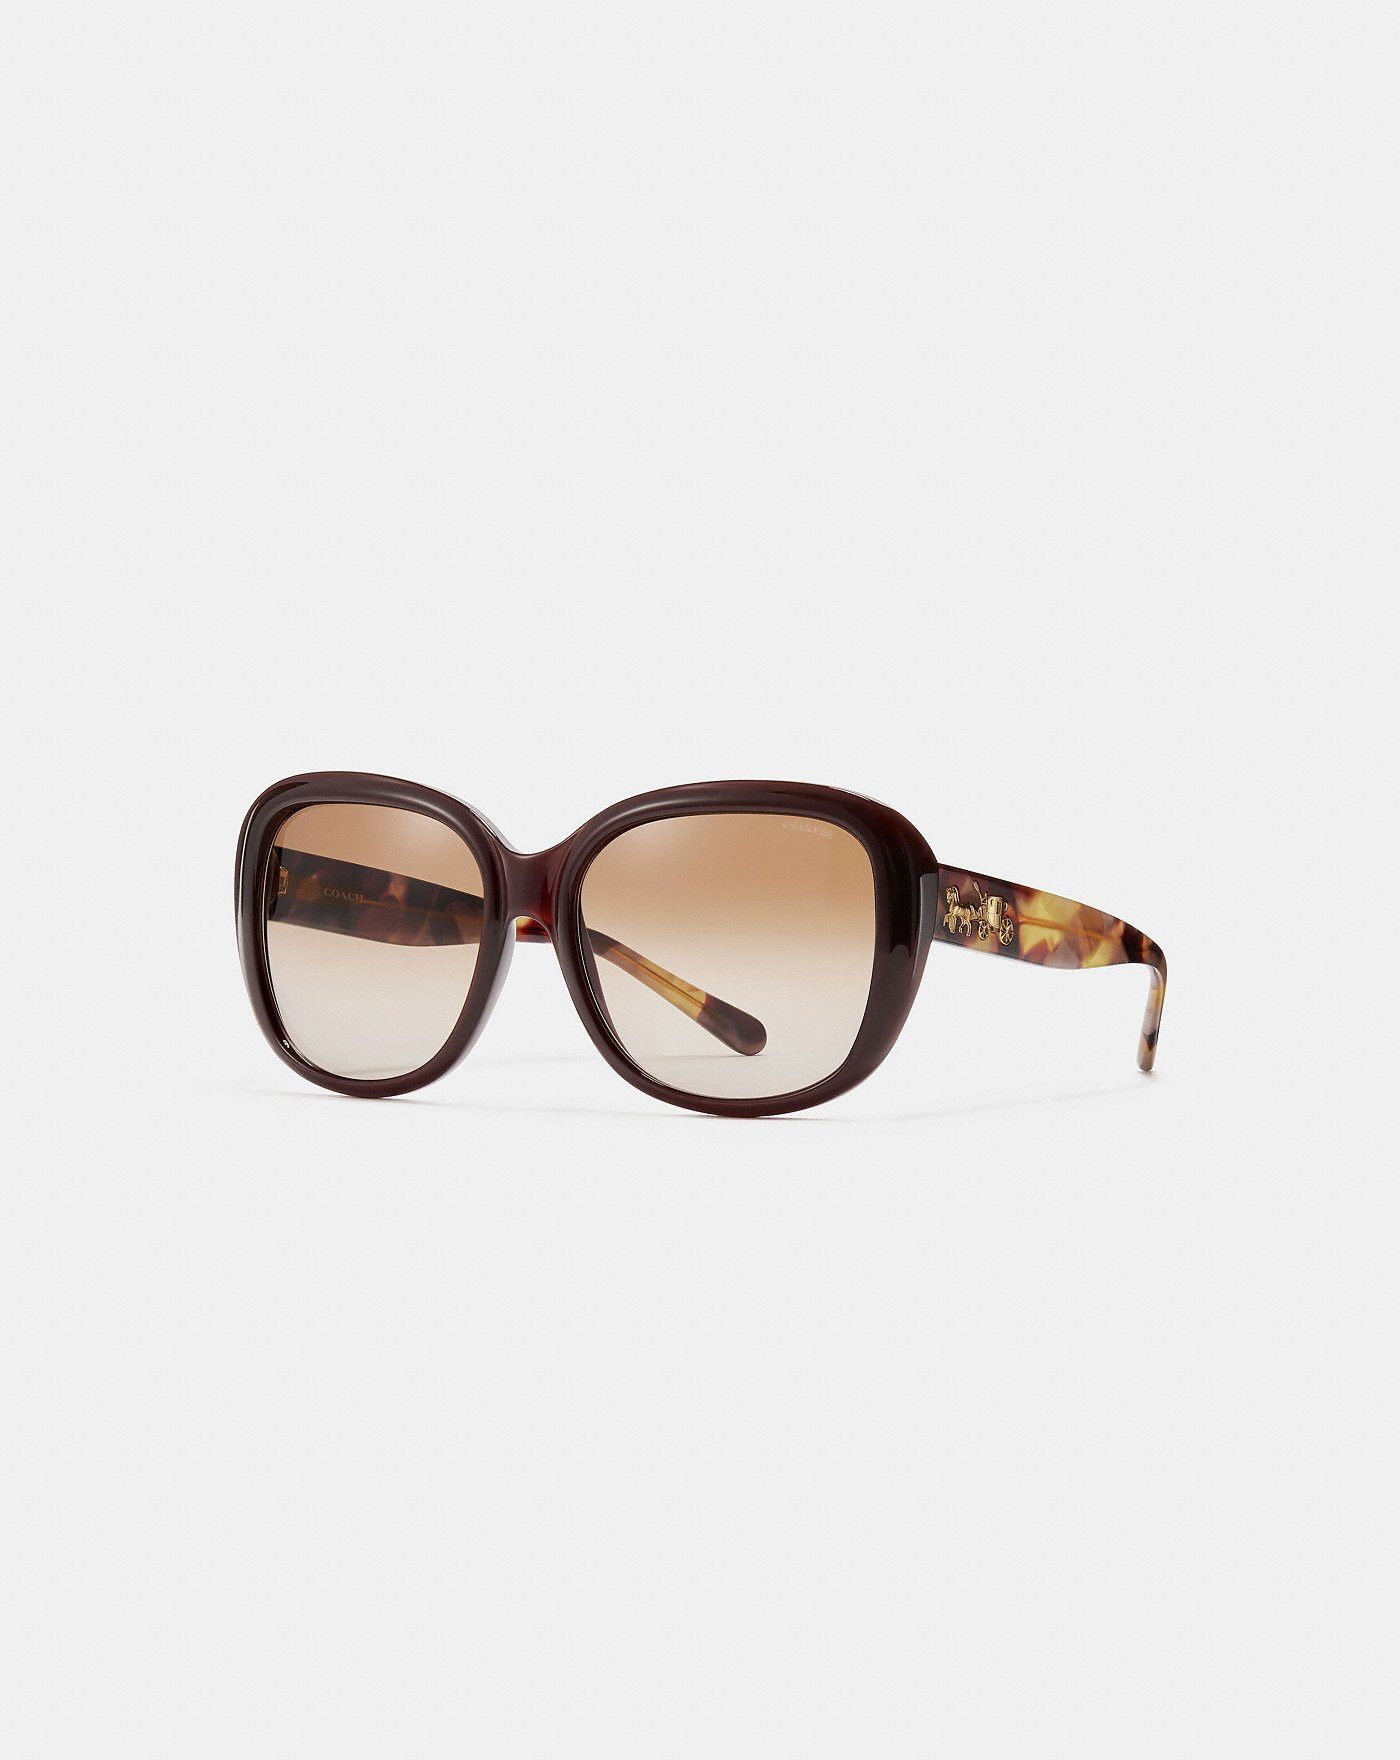 3456a29432be Horse and Carriage Soft Square Sunglasses | COACH